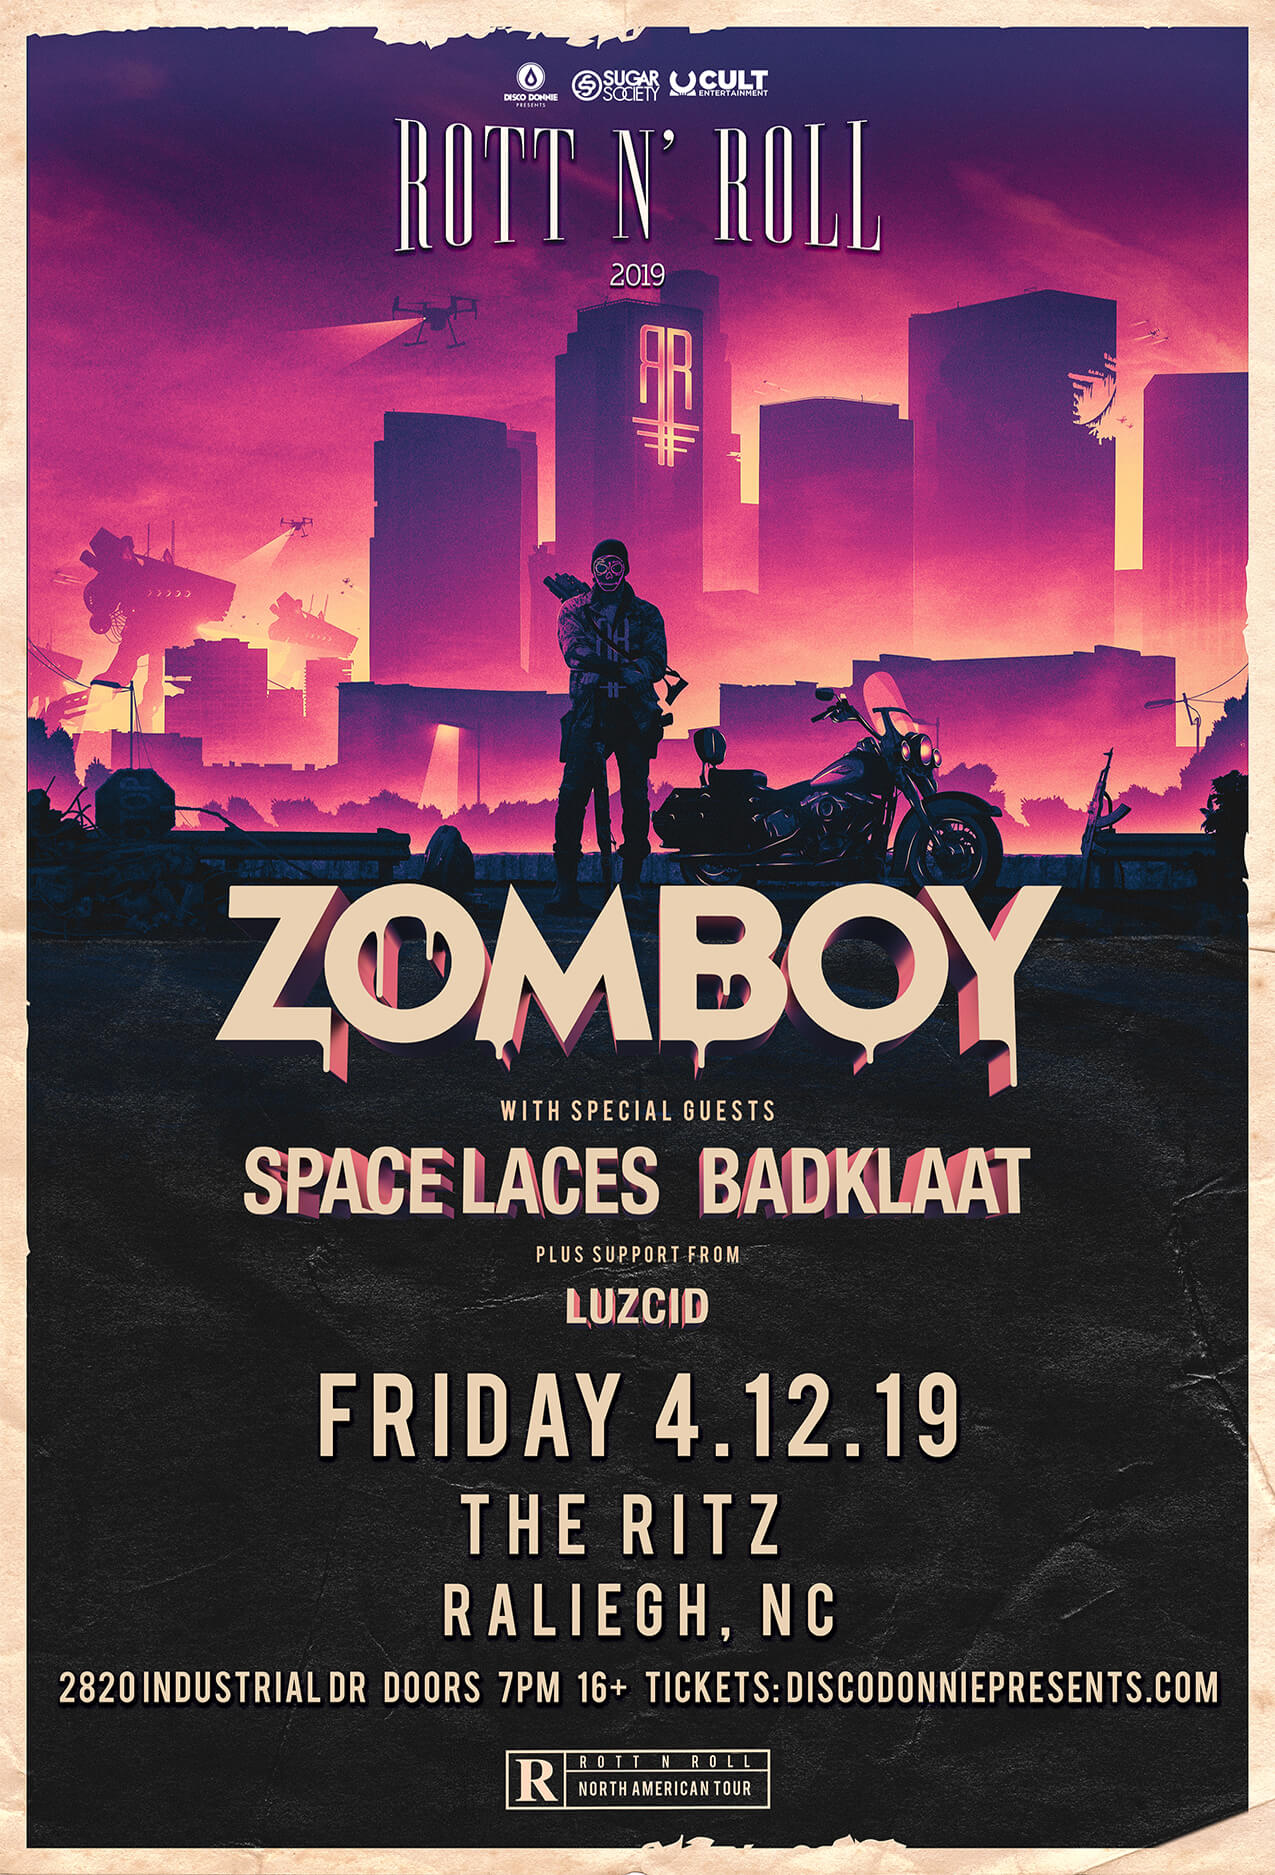 Zomboy, Space Laces, BadKlaat, Luzcid in Raleigh